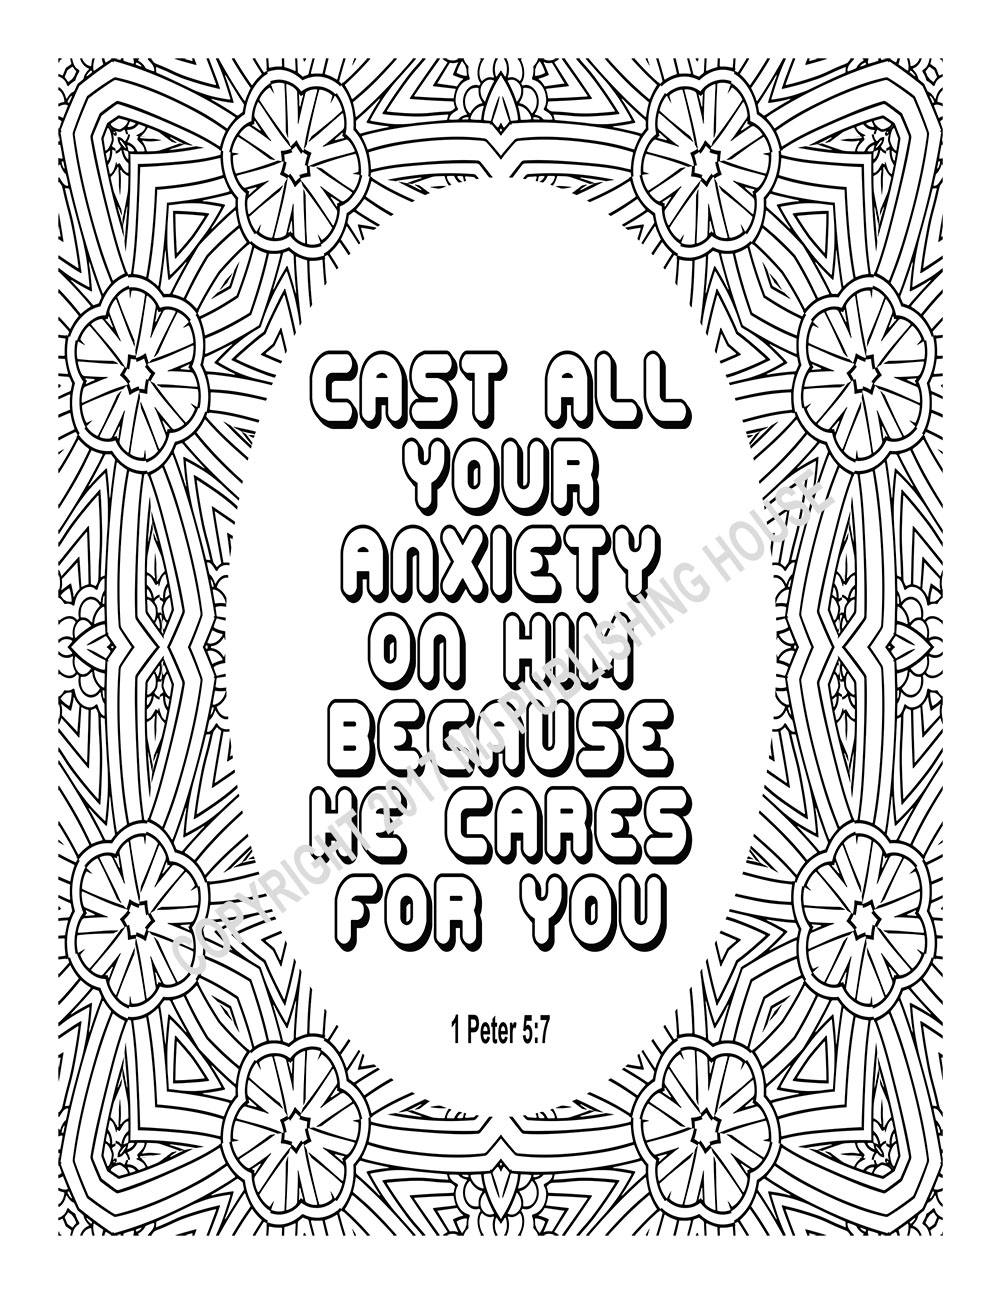 1 peter 5 7 coloring page bible verse coloring page cast all your anxiety on him 1 peter coloring page 5 7